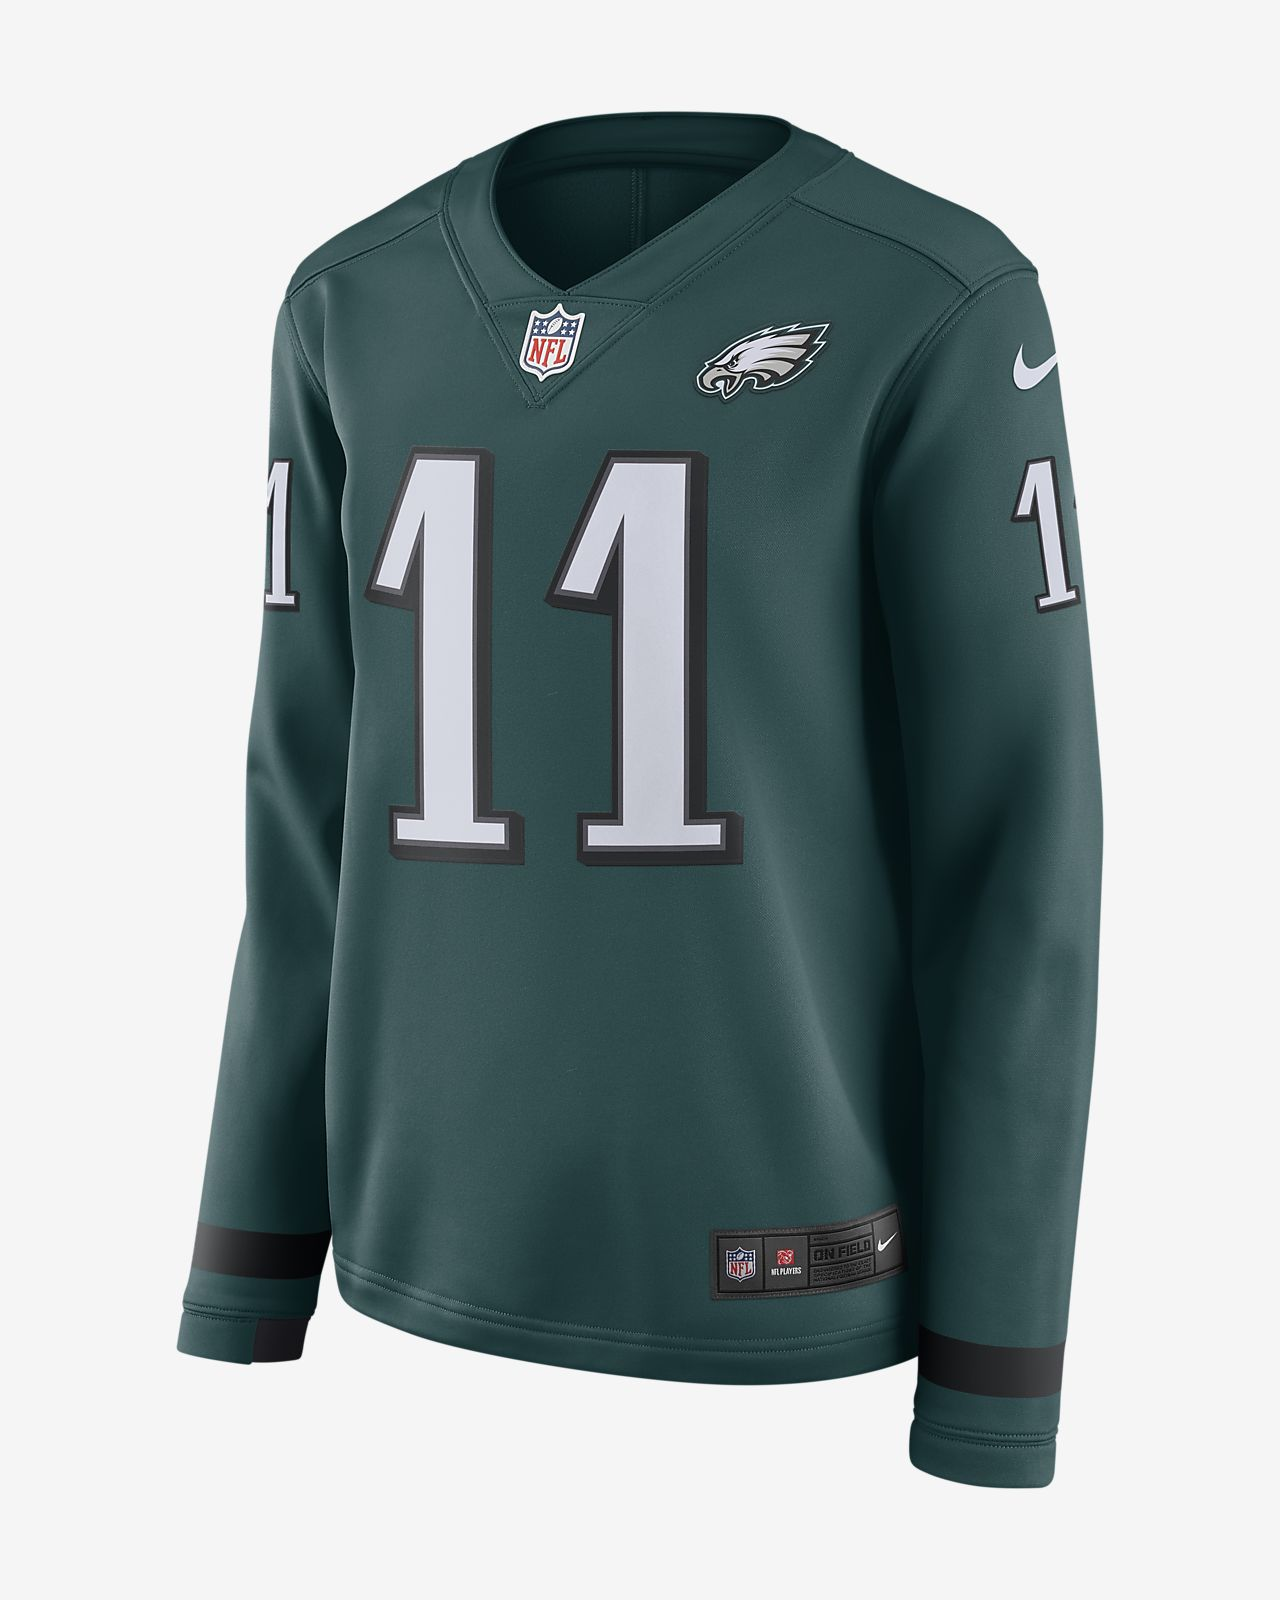 NFL Philadelphia Eagles Jersey (Carson Wentz) Women s Long-Sleeve ... d9c62c1597